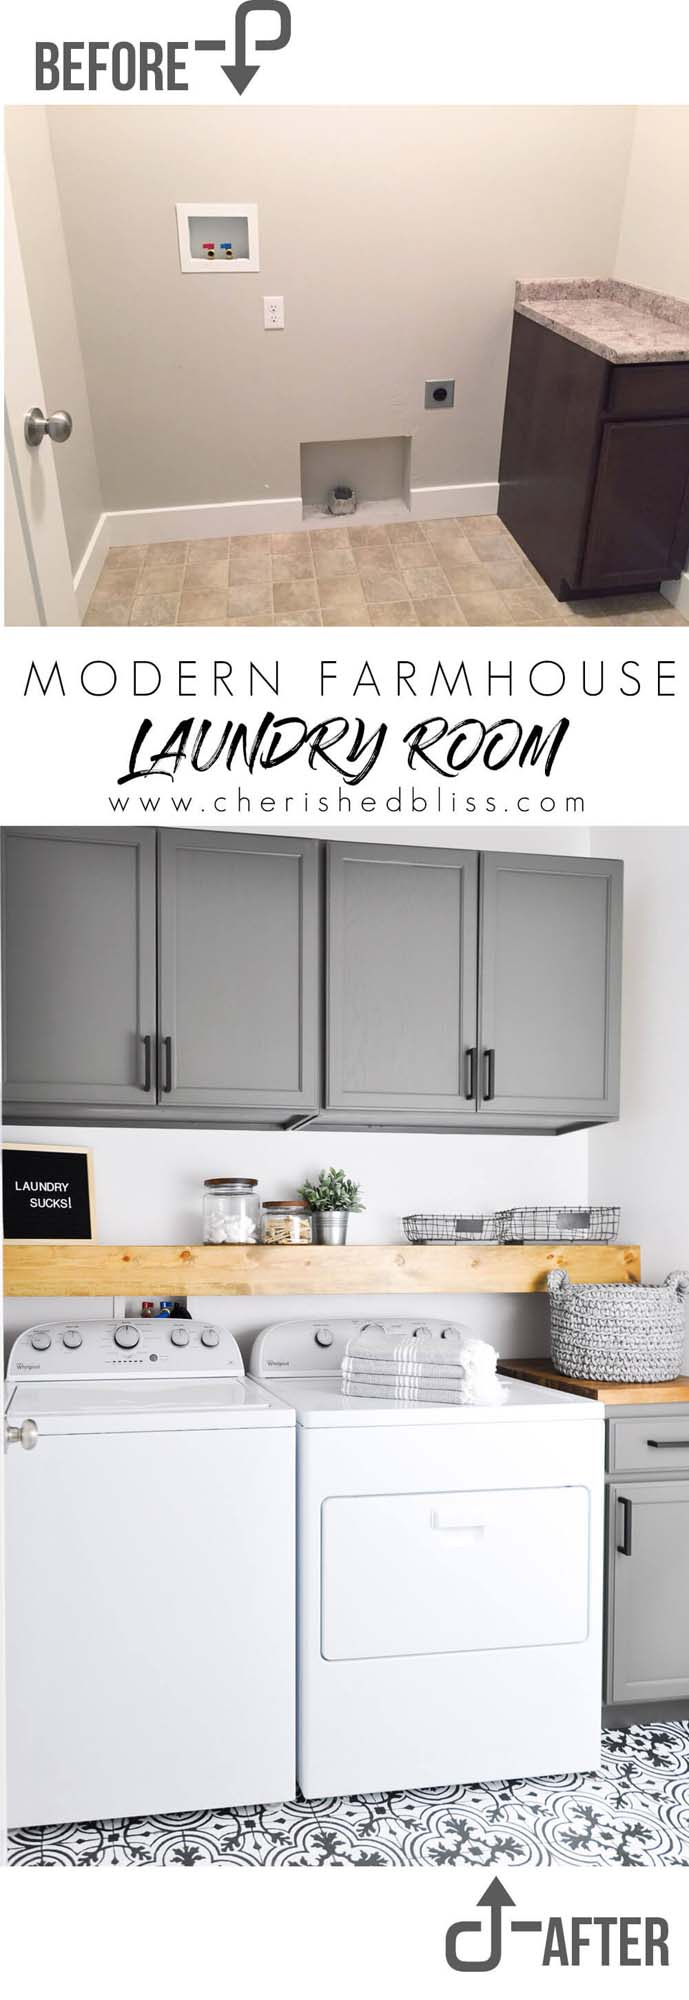 Updated Farmhouse Appeal #laundryroom #makeover #decorhomeideas